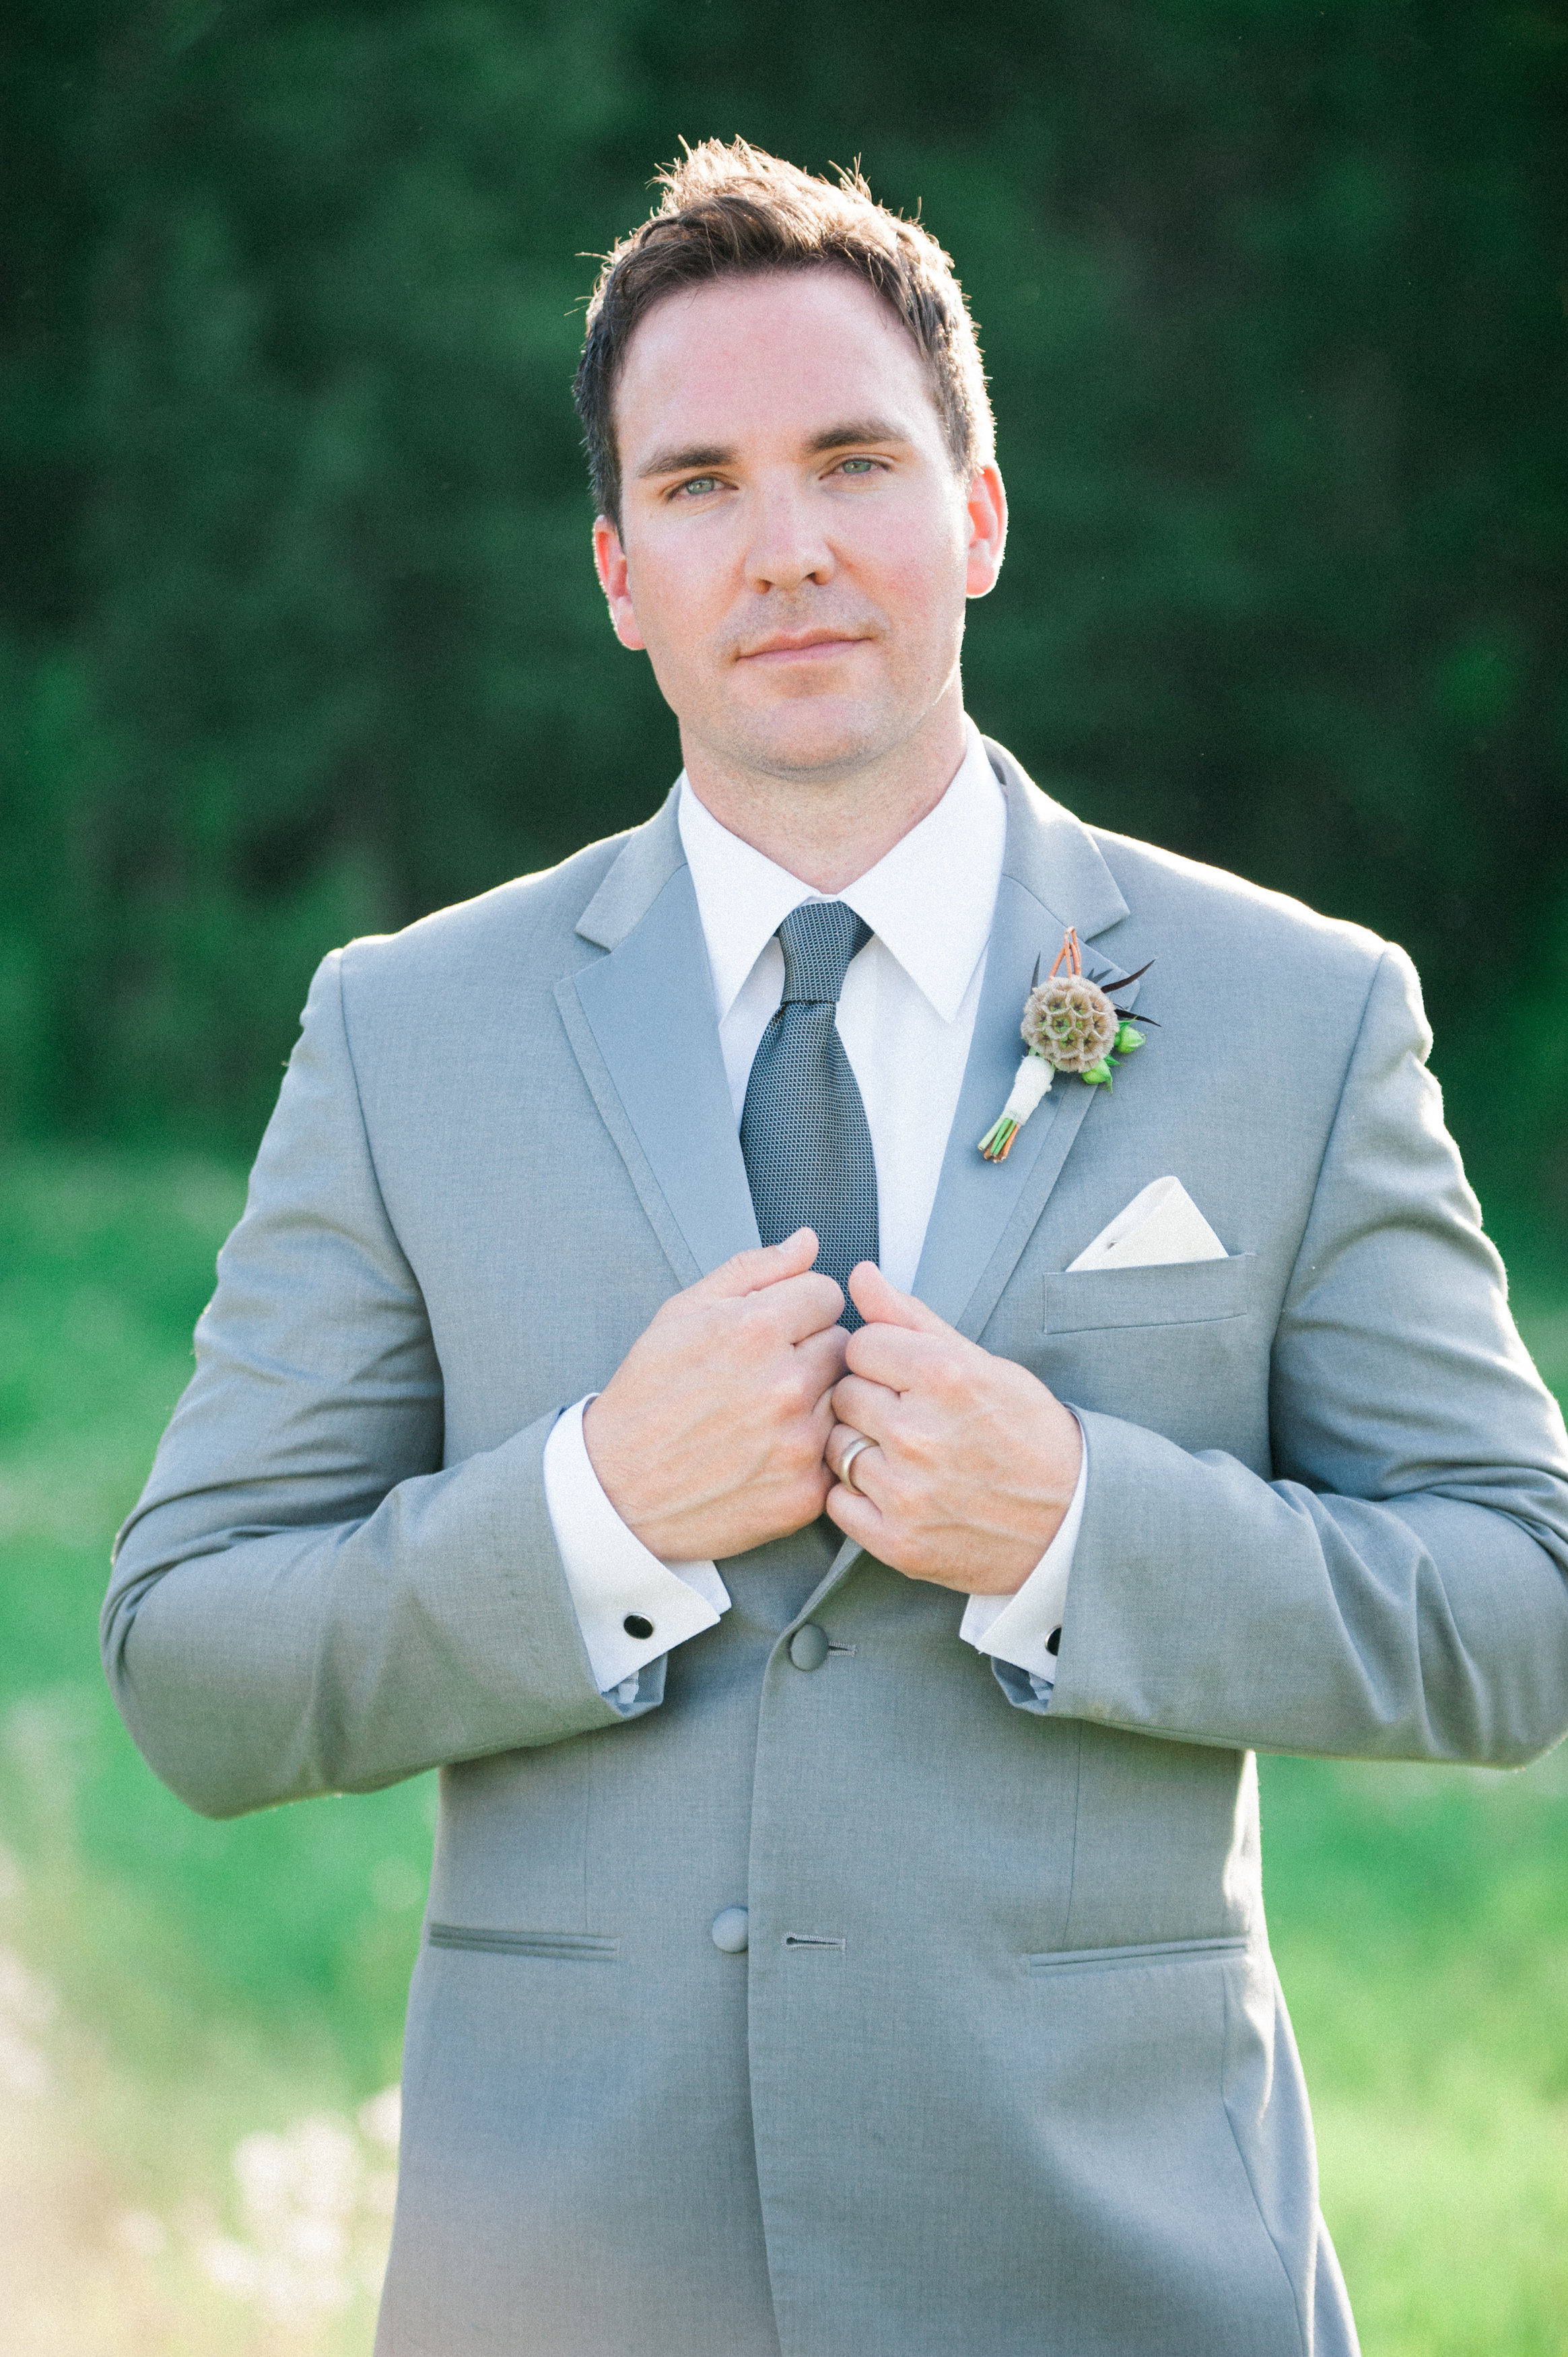 How to pin on boutonnières and corsages | Calyx Floral Design